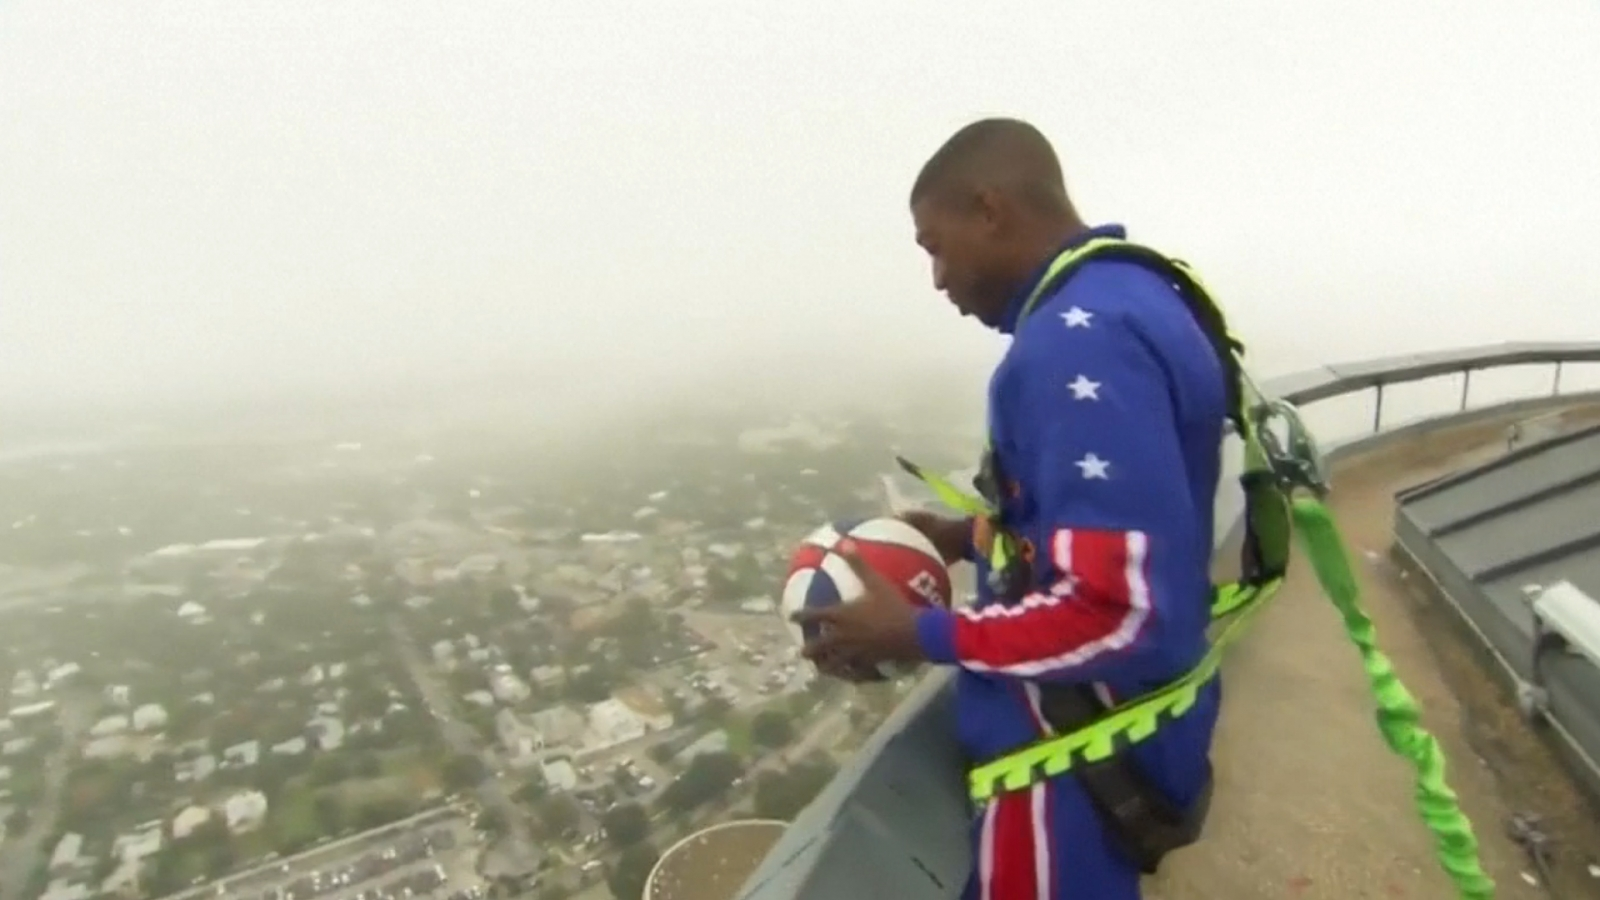 Harlem Globetrotters star shoots basket from 178 metres